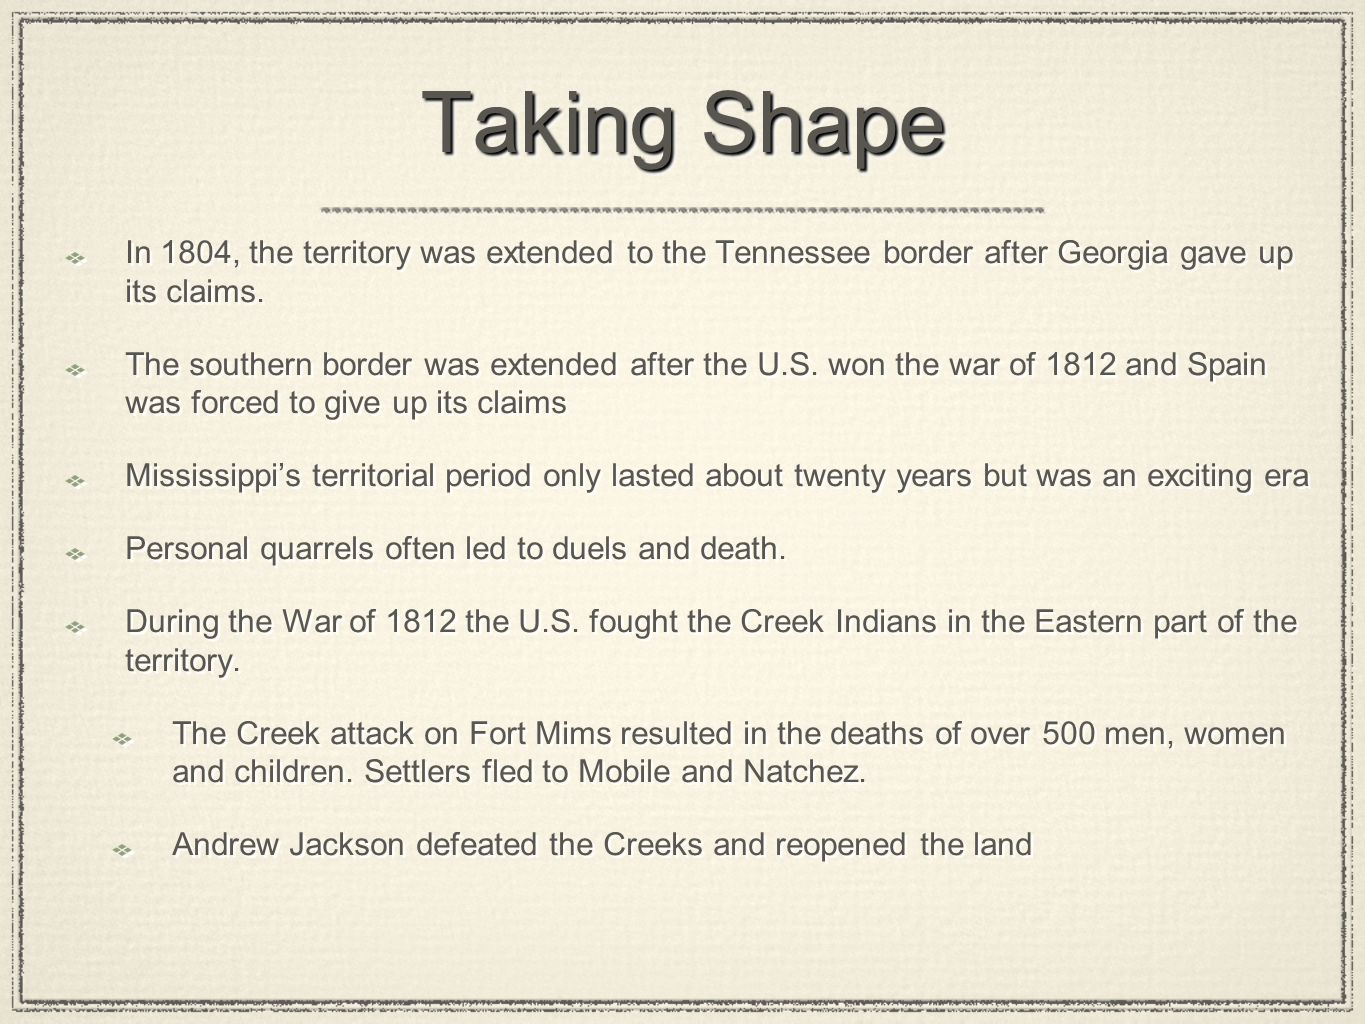 Taking Shape In 1804, the territory was extended to the Tennessee border after Georgia gave up its claims.